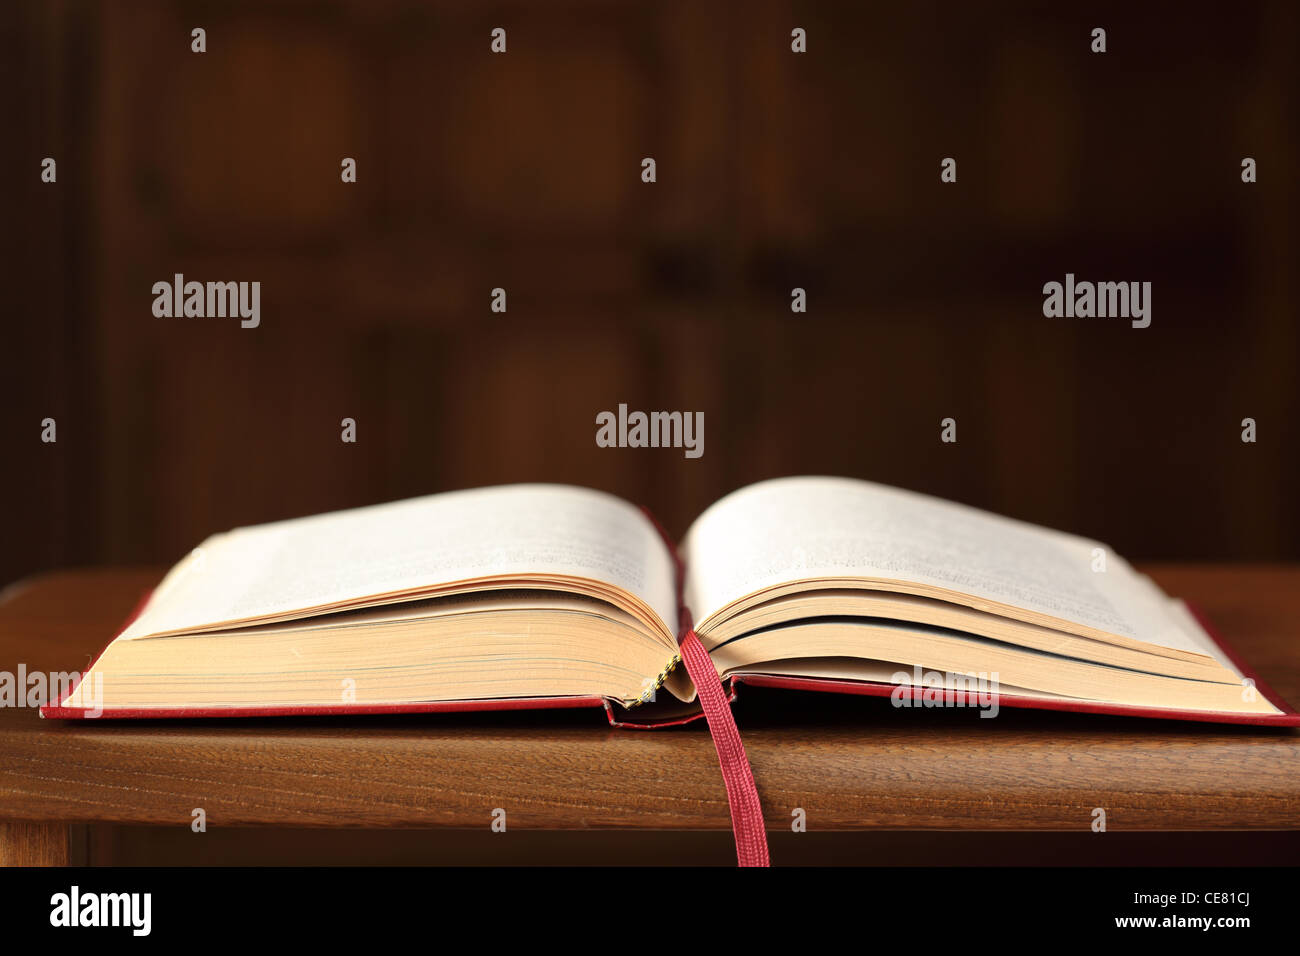 Close up of an open red book on an oak table with blurred background - Stock Image